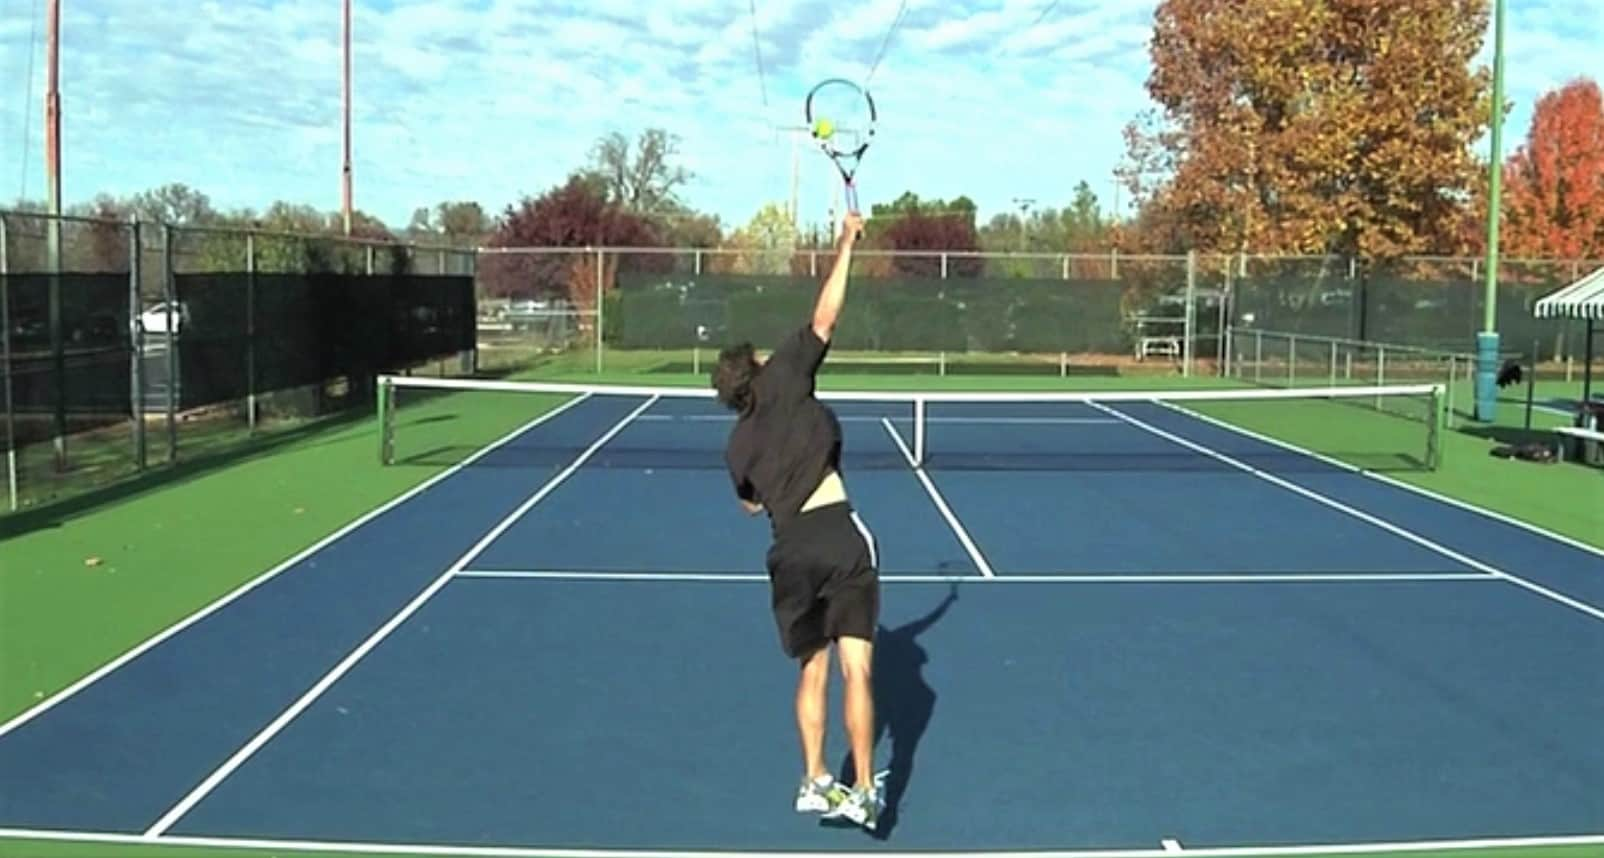 How to jump on your tennis serve